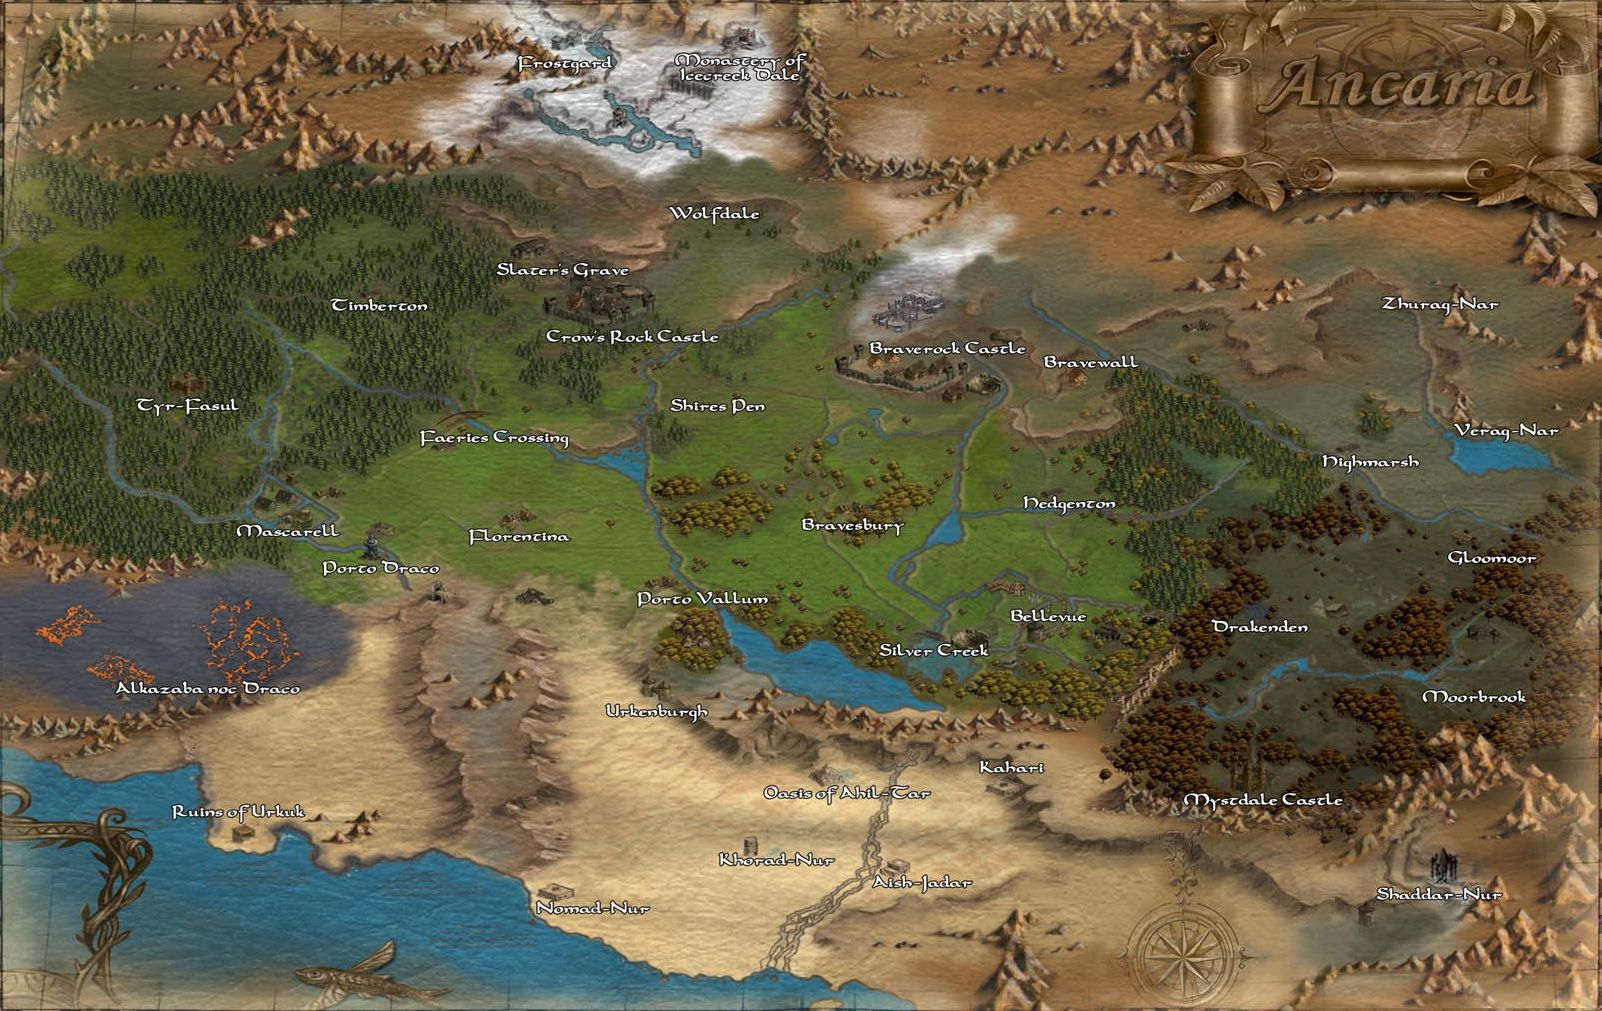 Continent sacred wiki fandom powered by wikia fullmapzb5 map of ancaria world of sacred gumiabroncs Choice Image